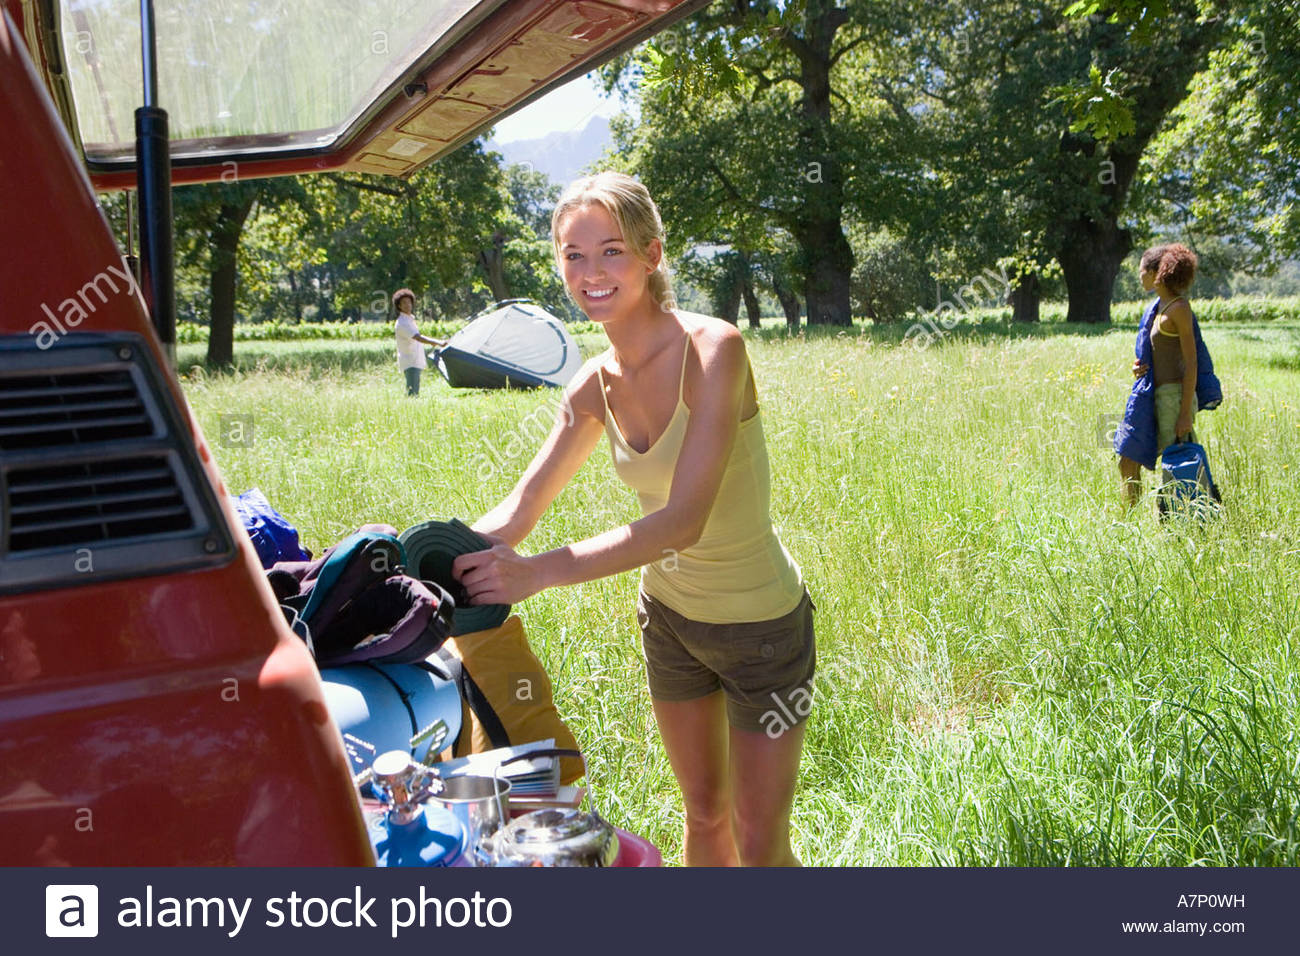 Young woman unloading parked SUV in woodland clearing on camping trip side view smiling portrait - Stock Image